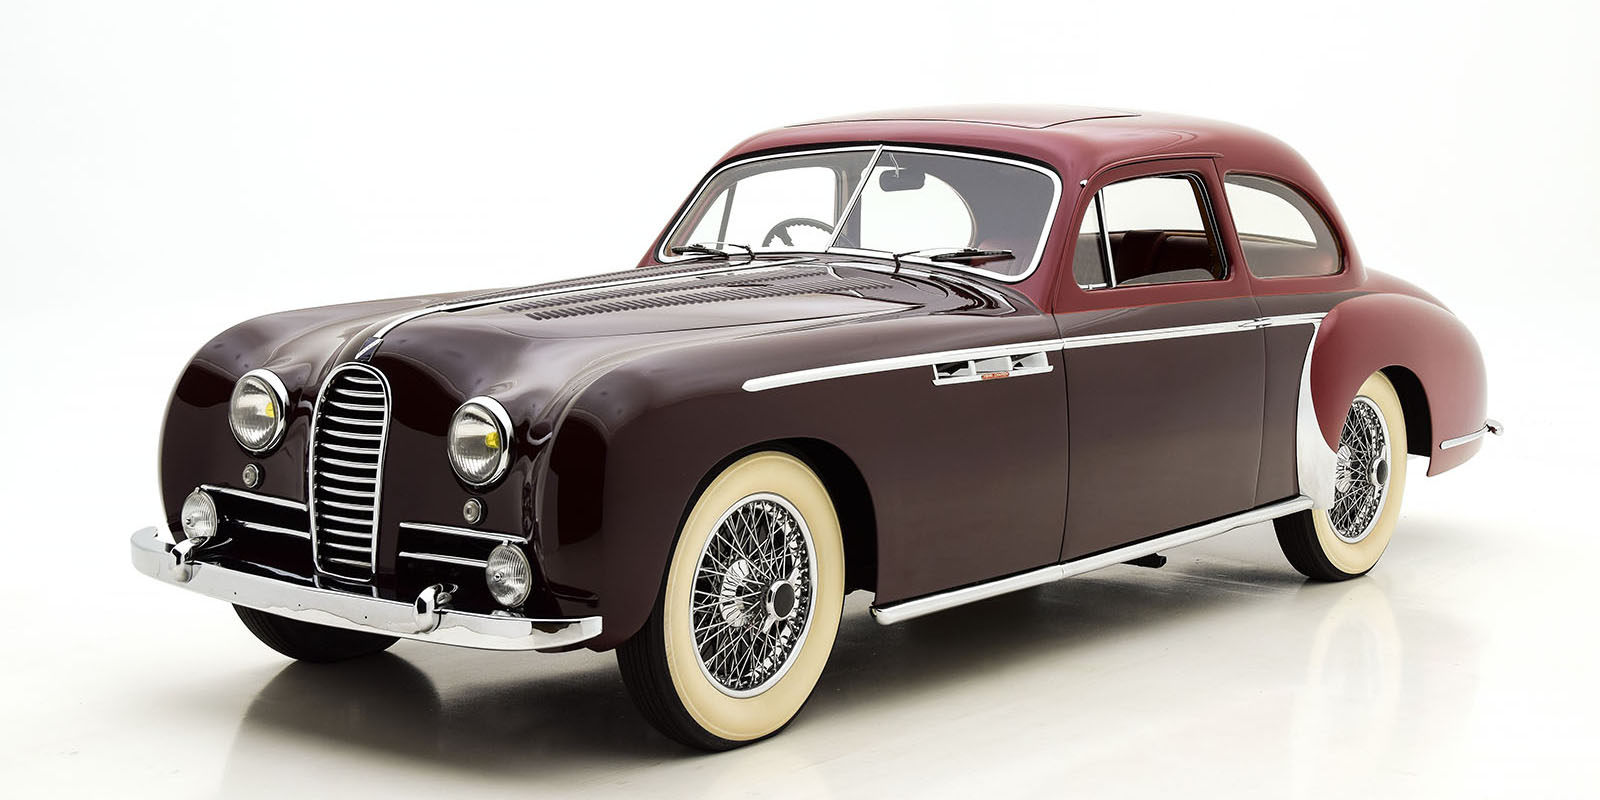 Classic Cars | Buy and Sell Classic Vehicles | Hyman LTD